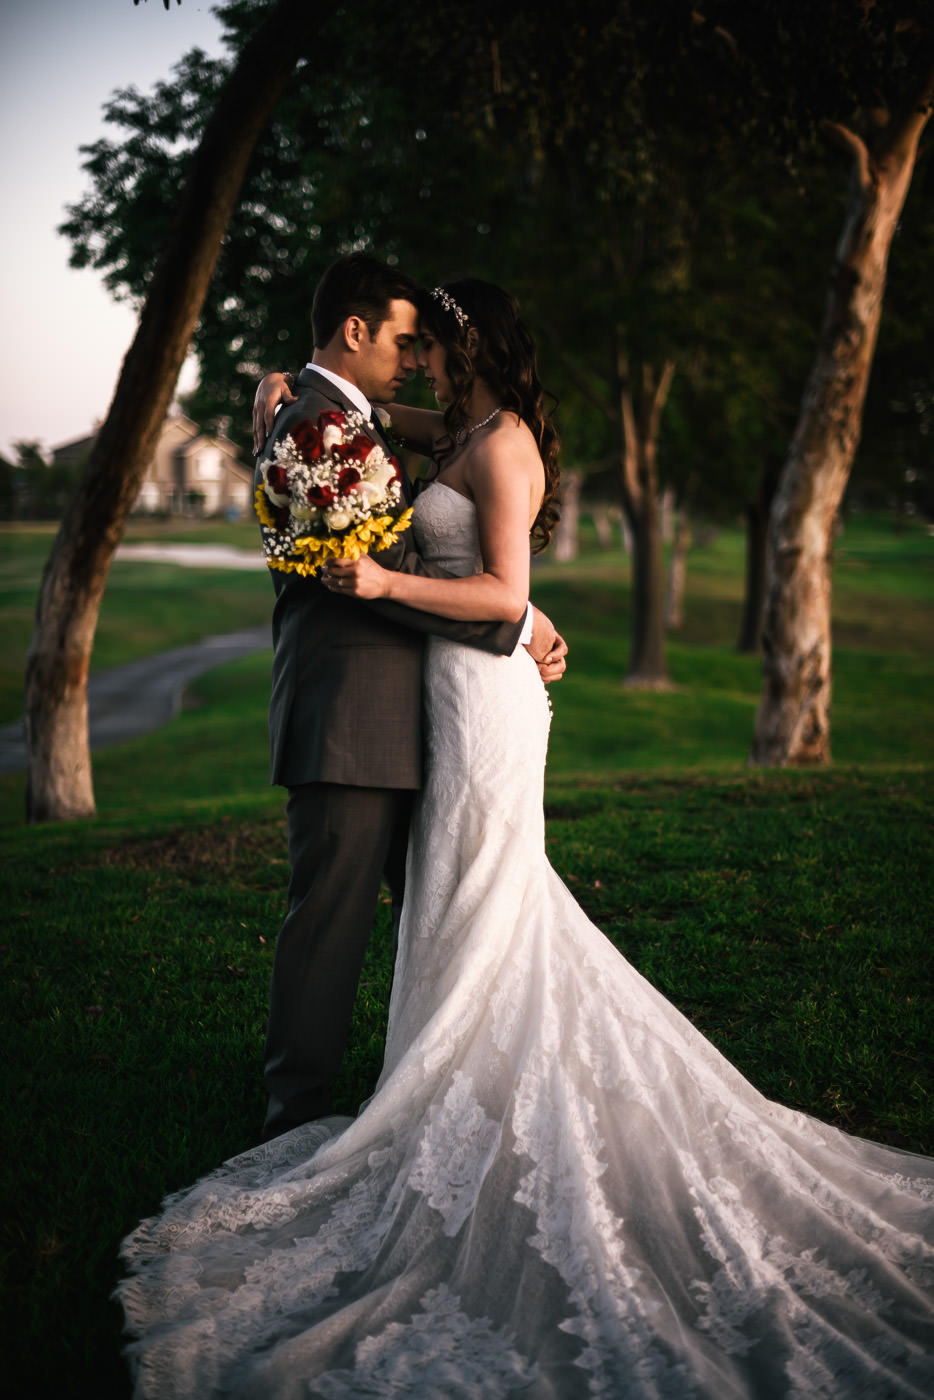 Romantic wedding photos by Fifth Photography.